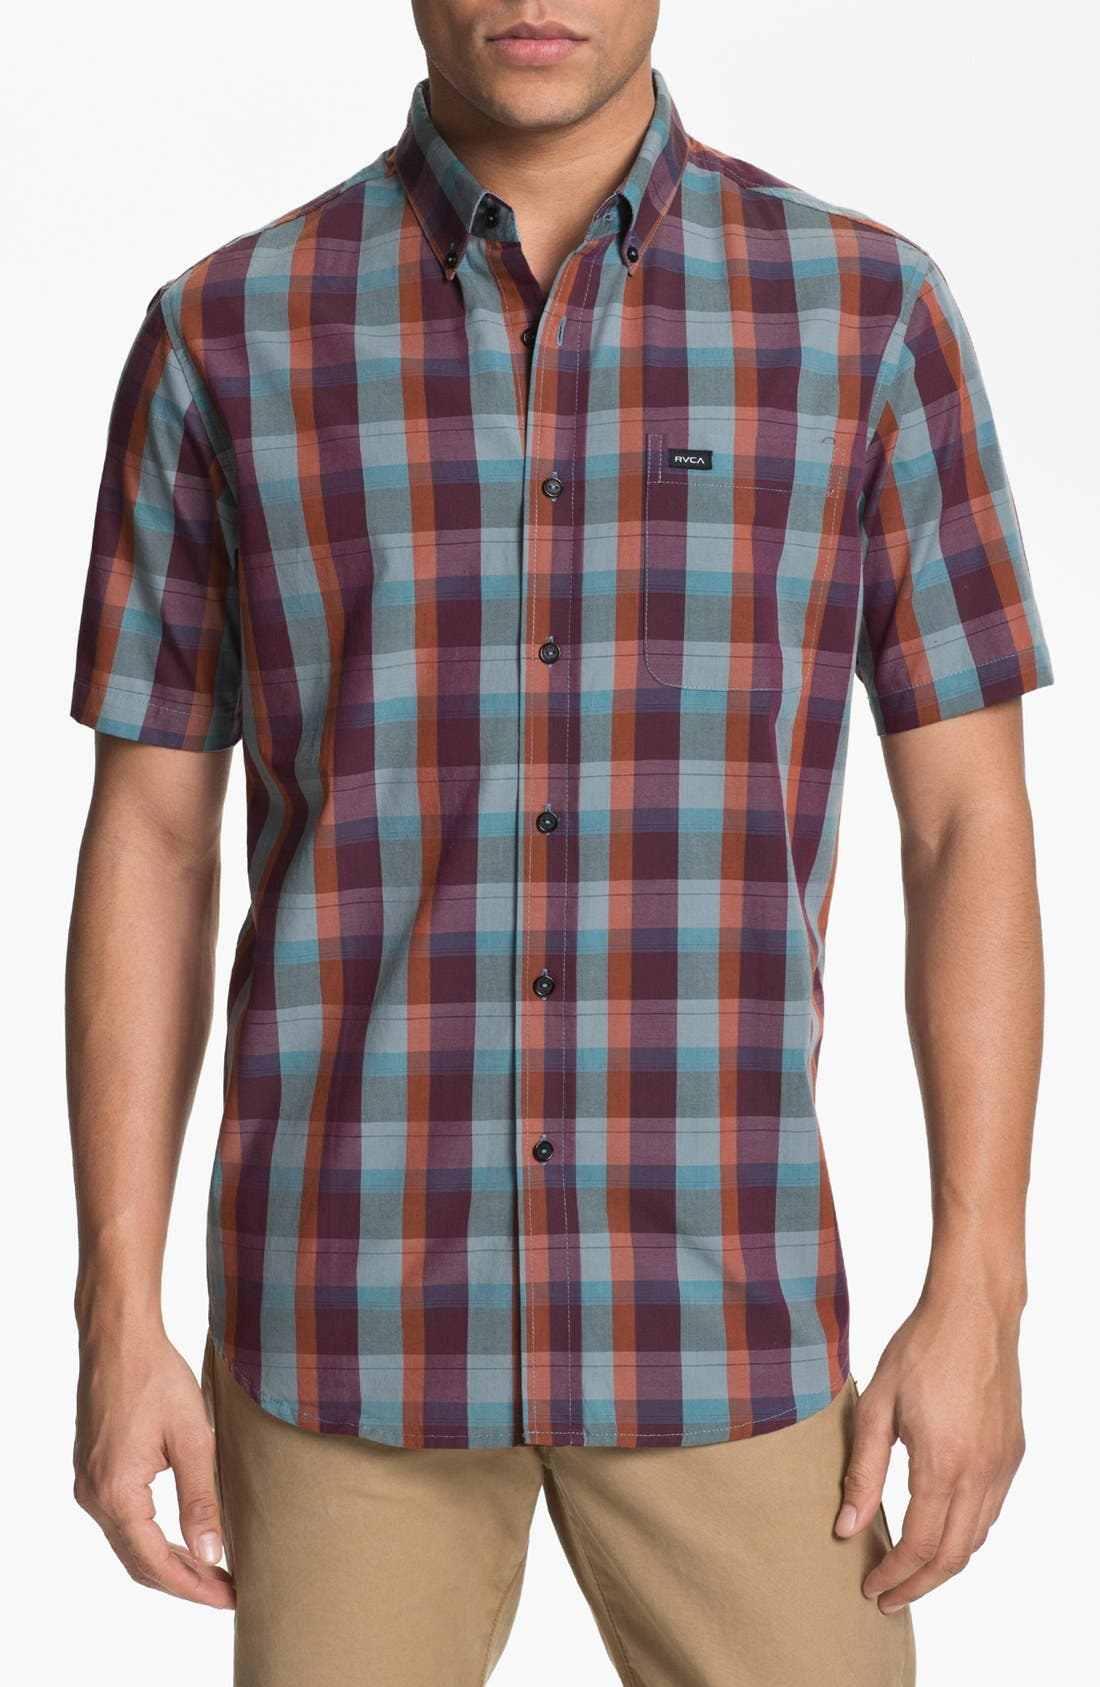 Alternate Image 1 Selected - RVCA 'Mingus' Plaid Woven Shirt